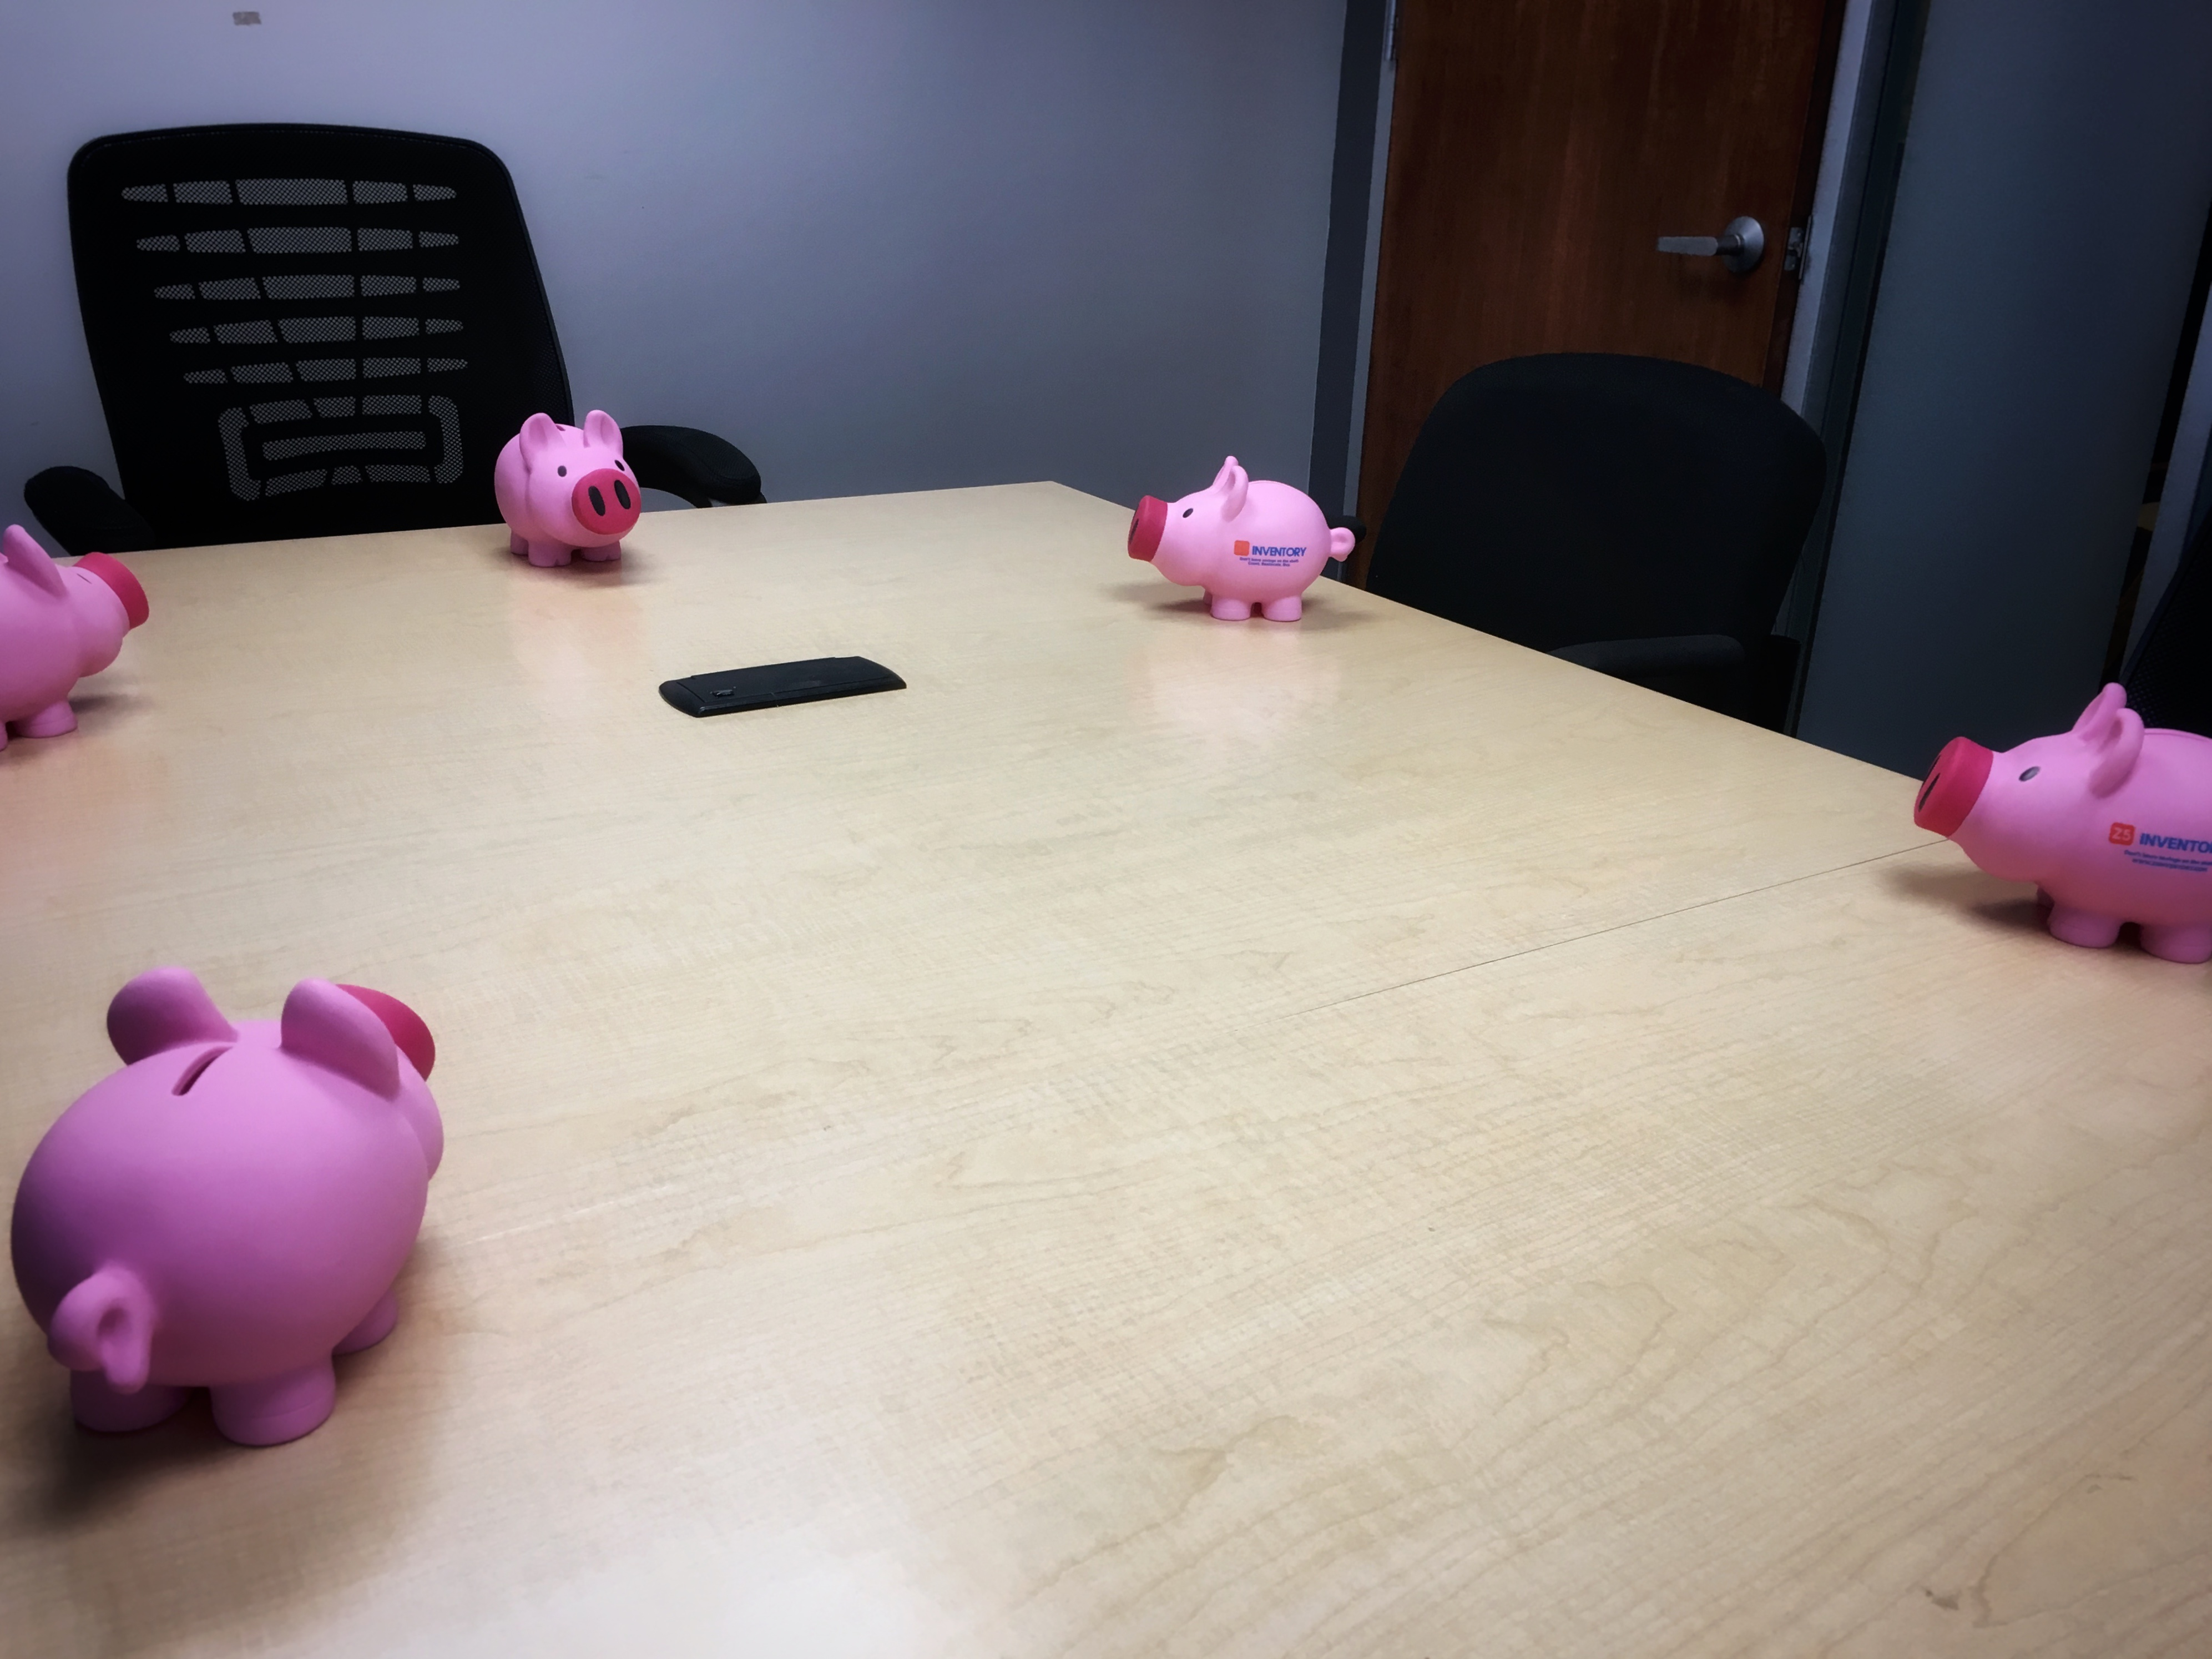 The Z5 Piggy Bank holding a boardroom meeting.